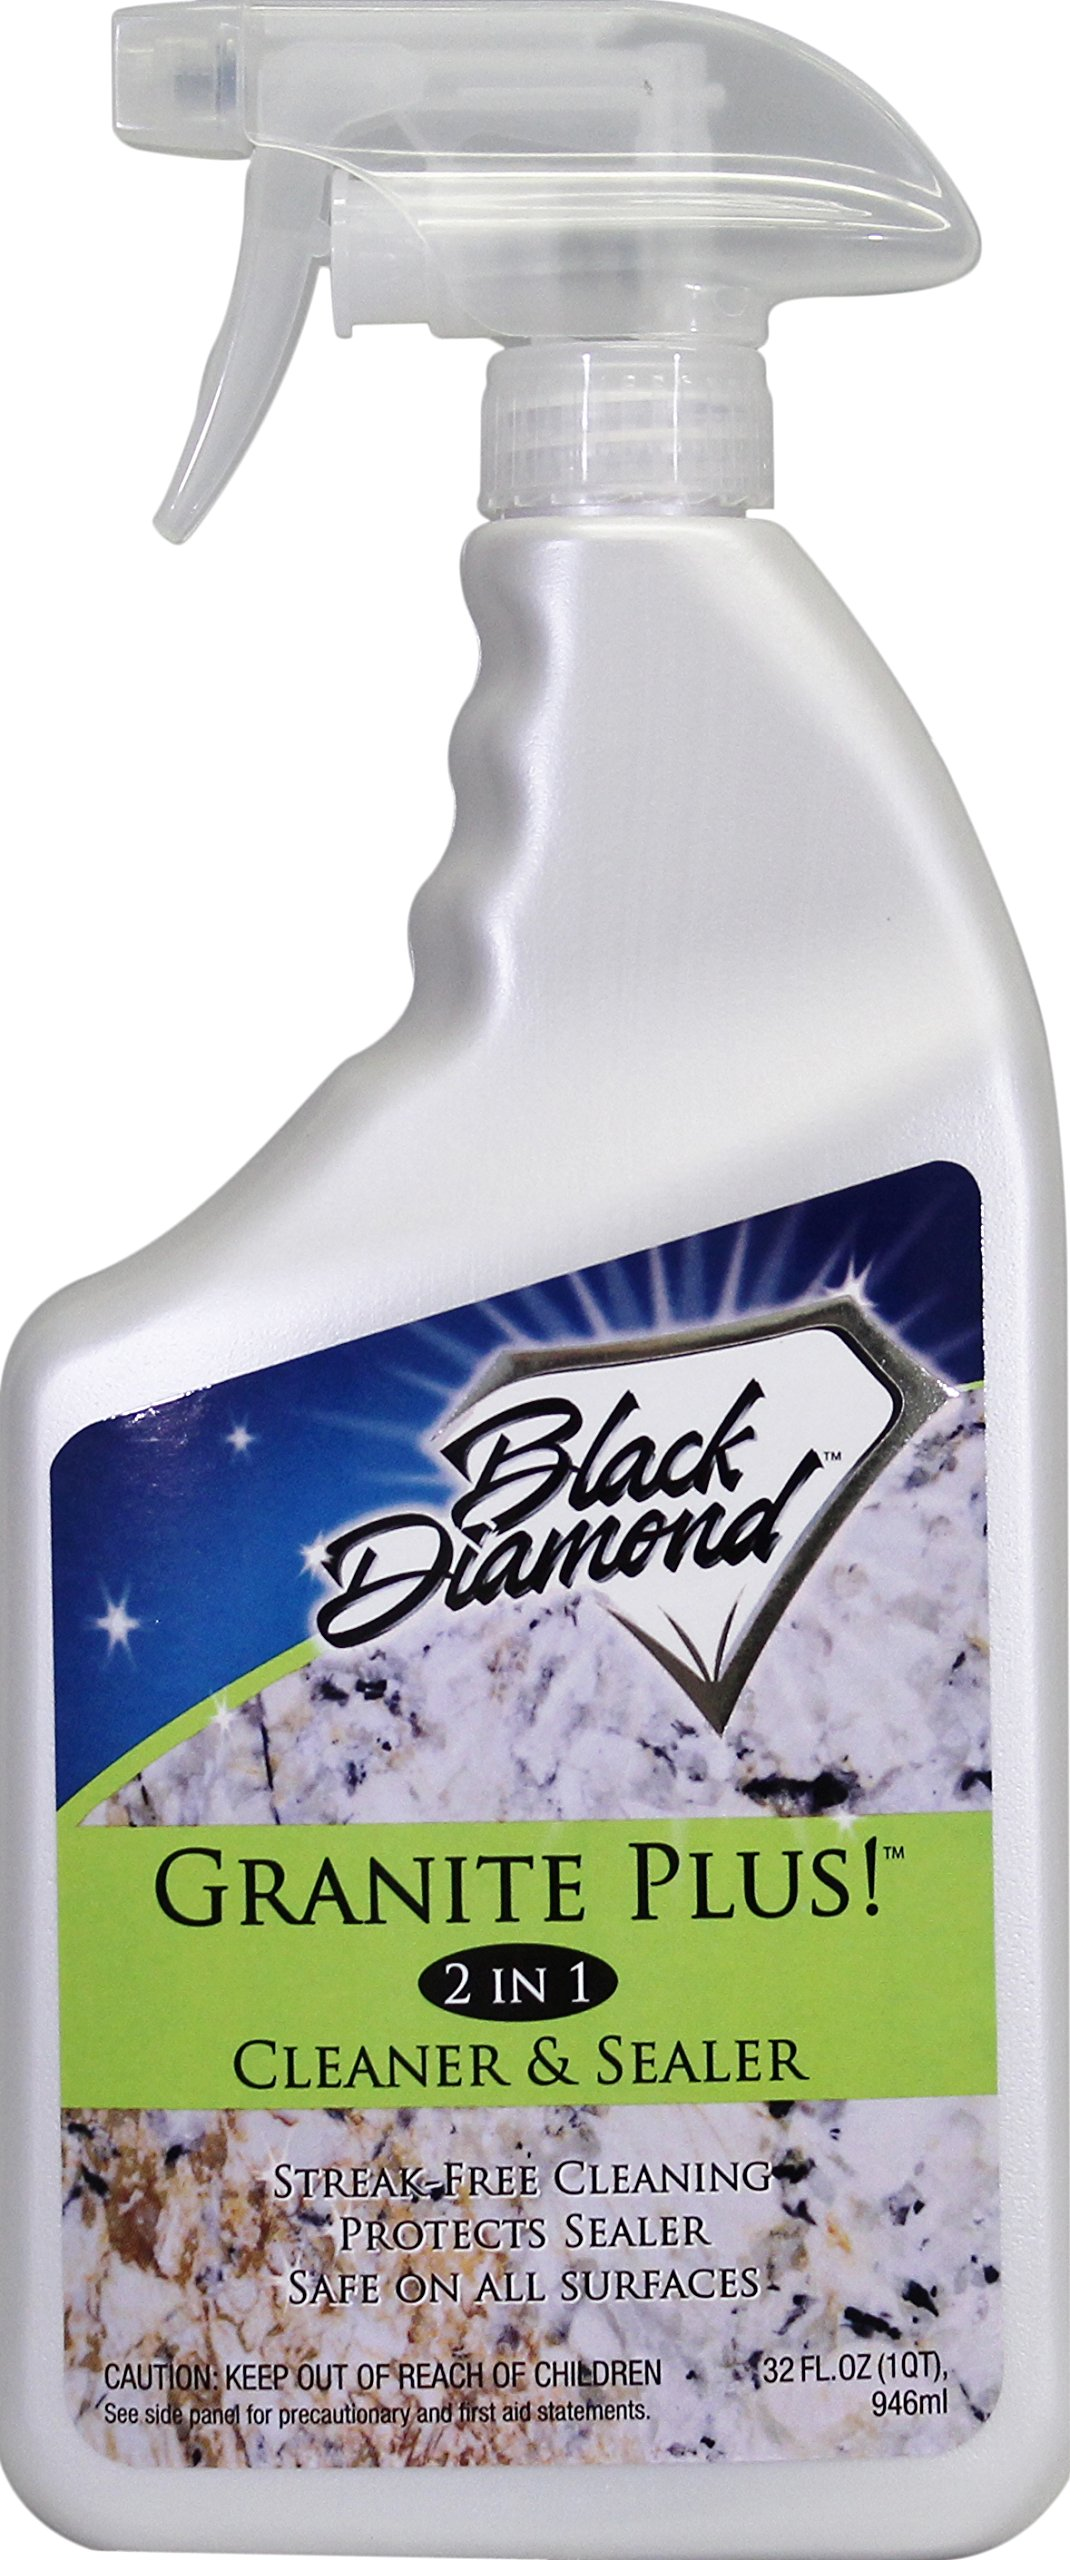 GRANITE PLUS! 2 in 1 Cleaner & Sealer for Granite, Marble, Travertine, Limestone, Ready to Use